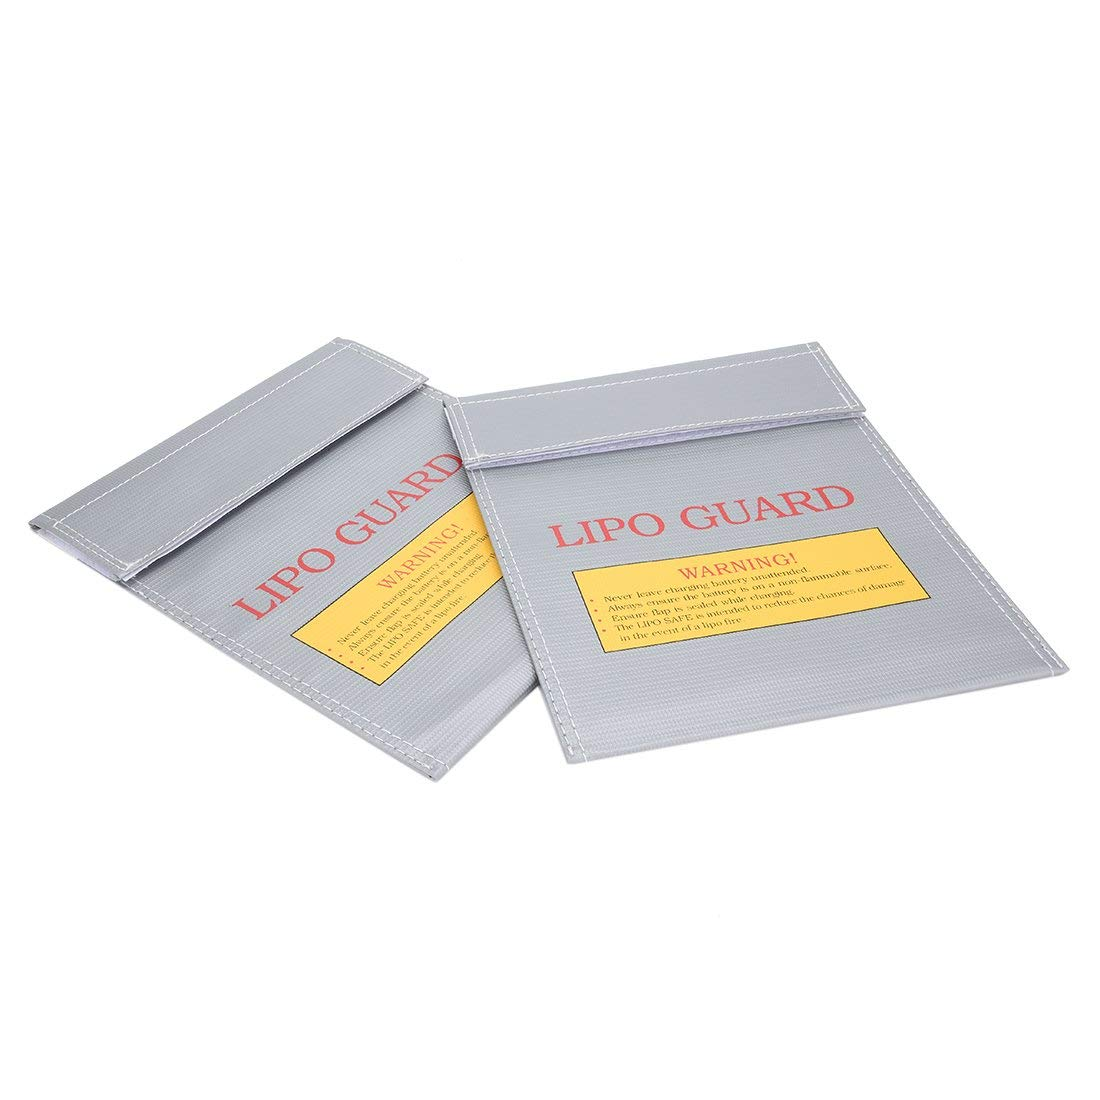 uxcell 2pcs Fireproof RC Lipo Battery Storage Charging Safe Bag Pouch Sack Lipo Battery Guard Silver 180mmx230mm Large